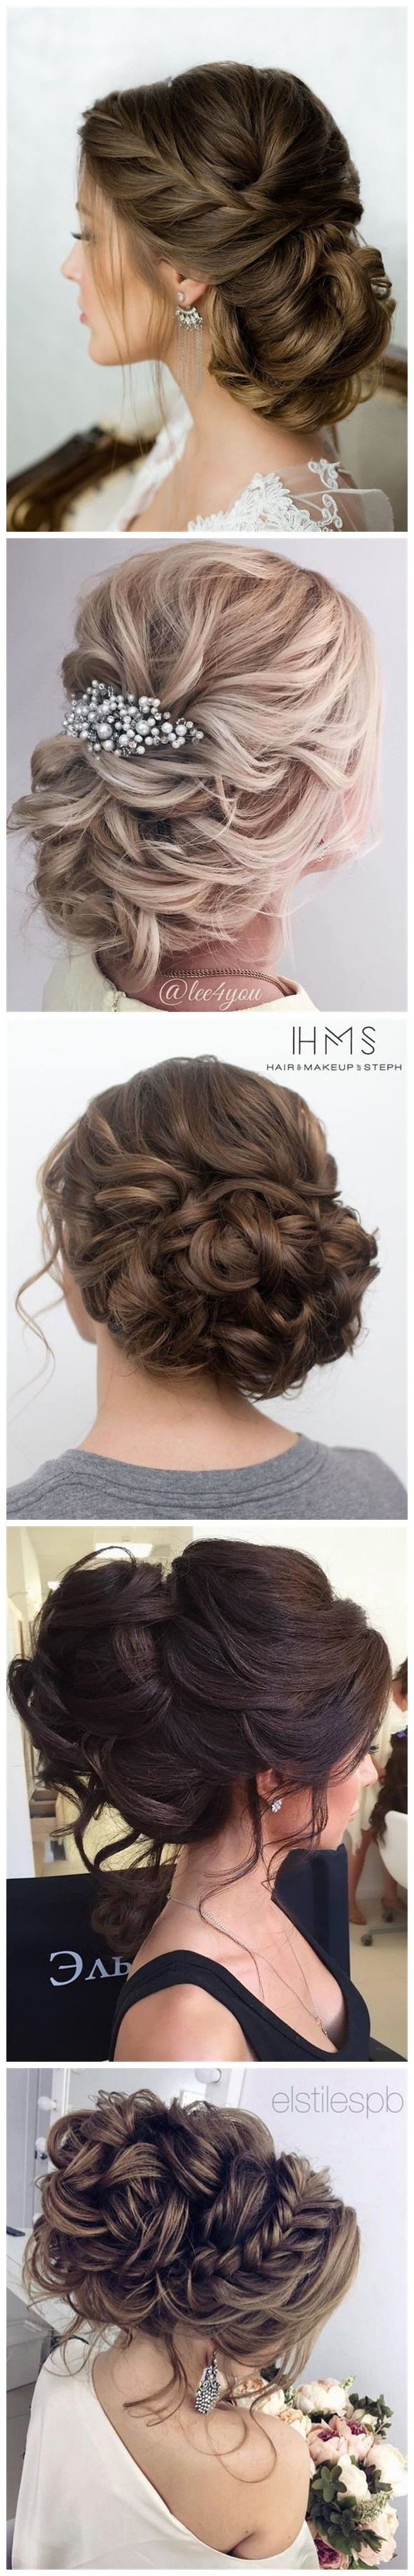 Wedding hairstyles come and see why you canut miss these